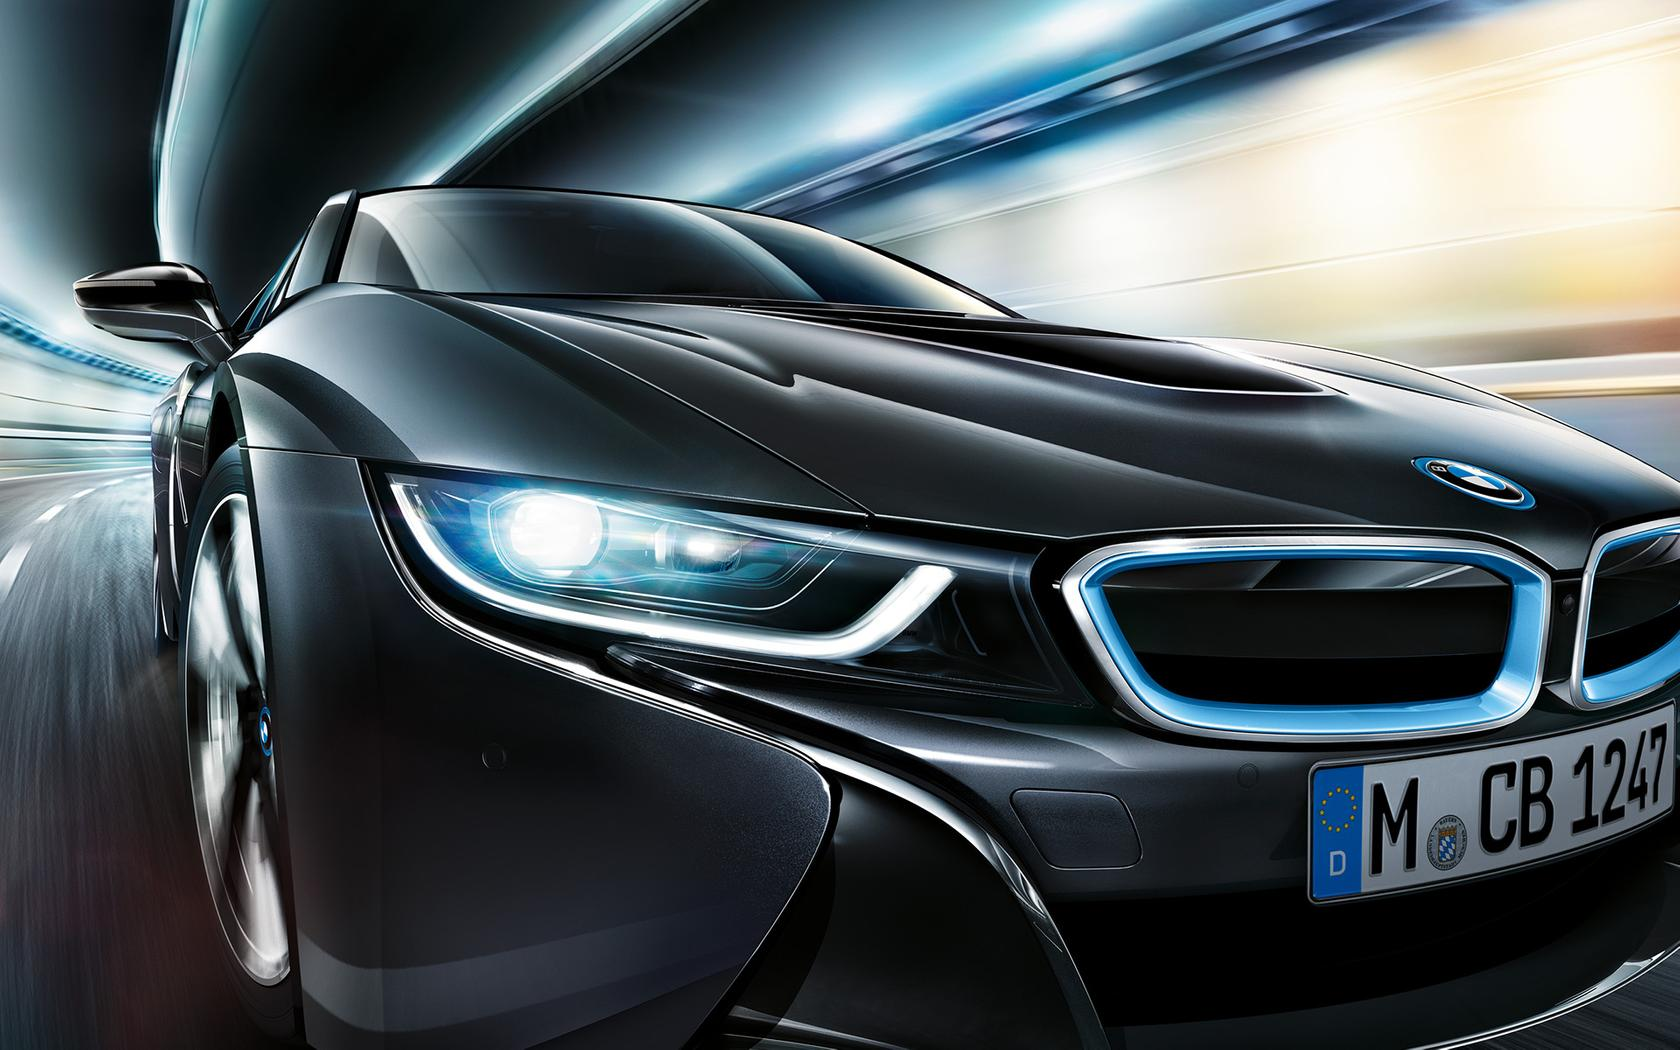 Black Bmw I8 On The Road Bmw Wallpaper Wallpaper Download 1680x1050